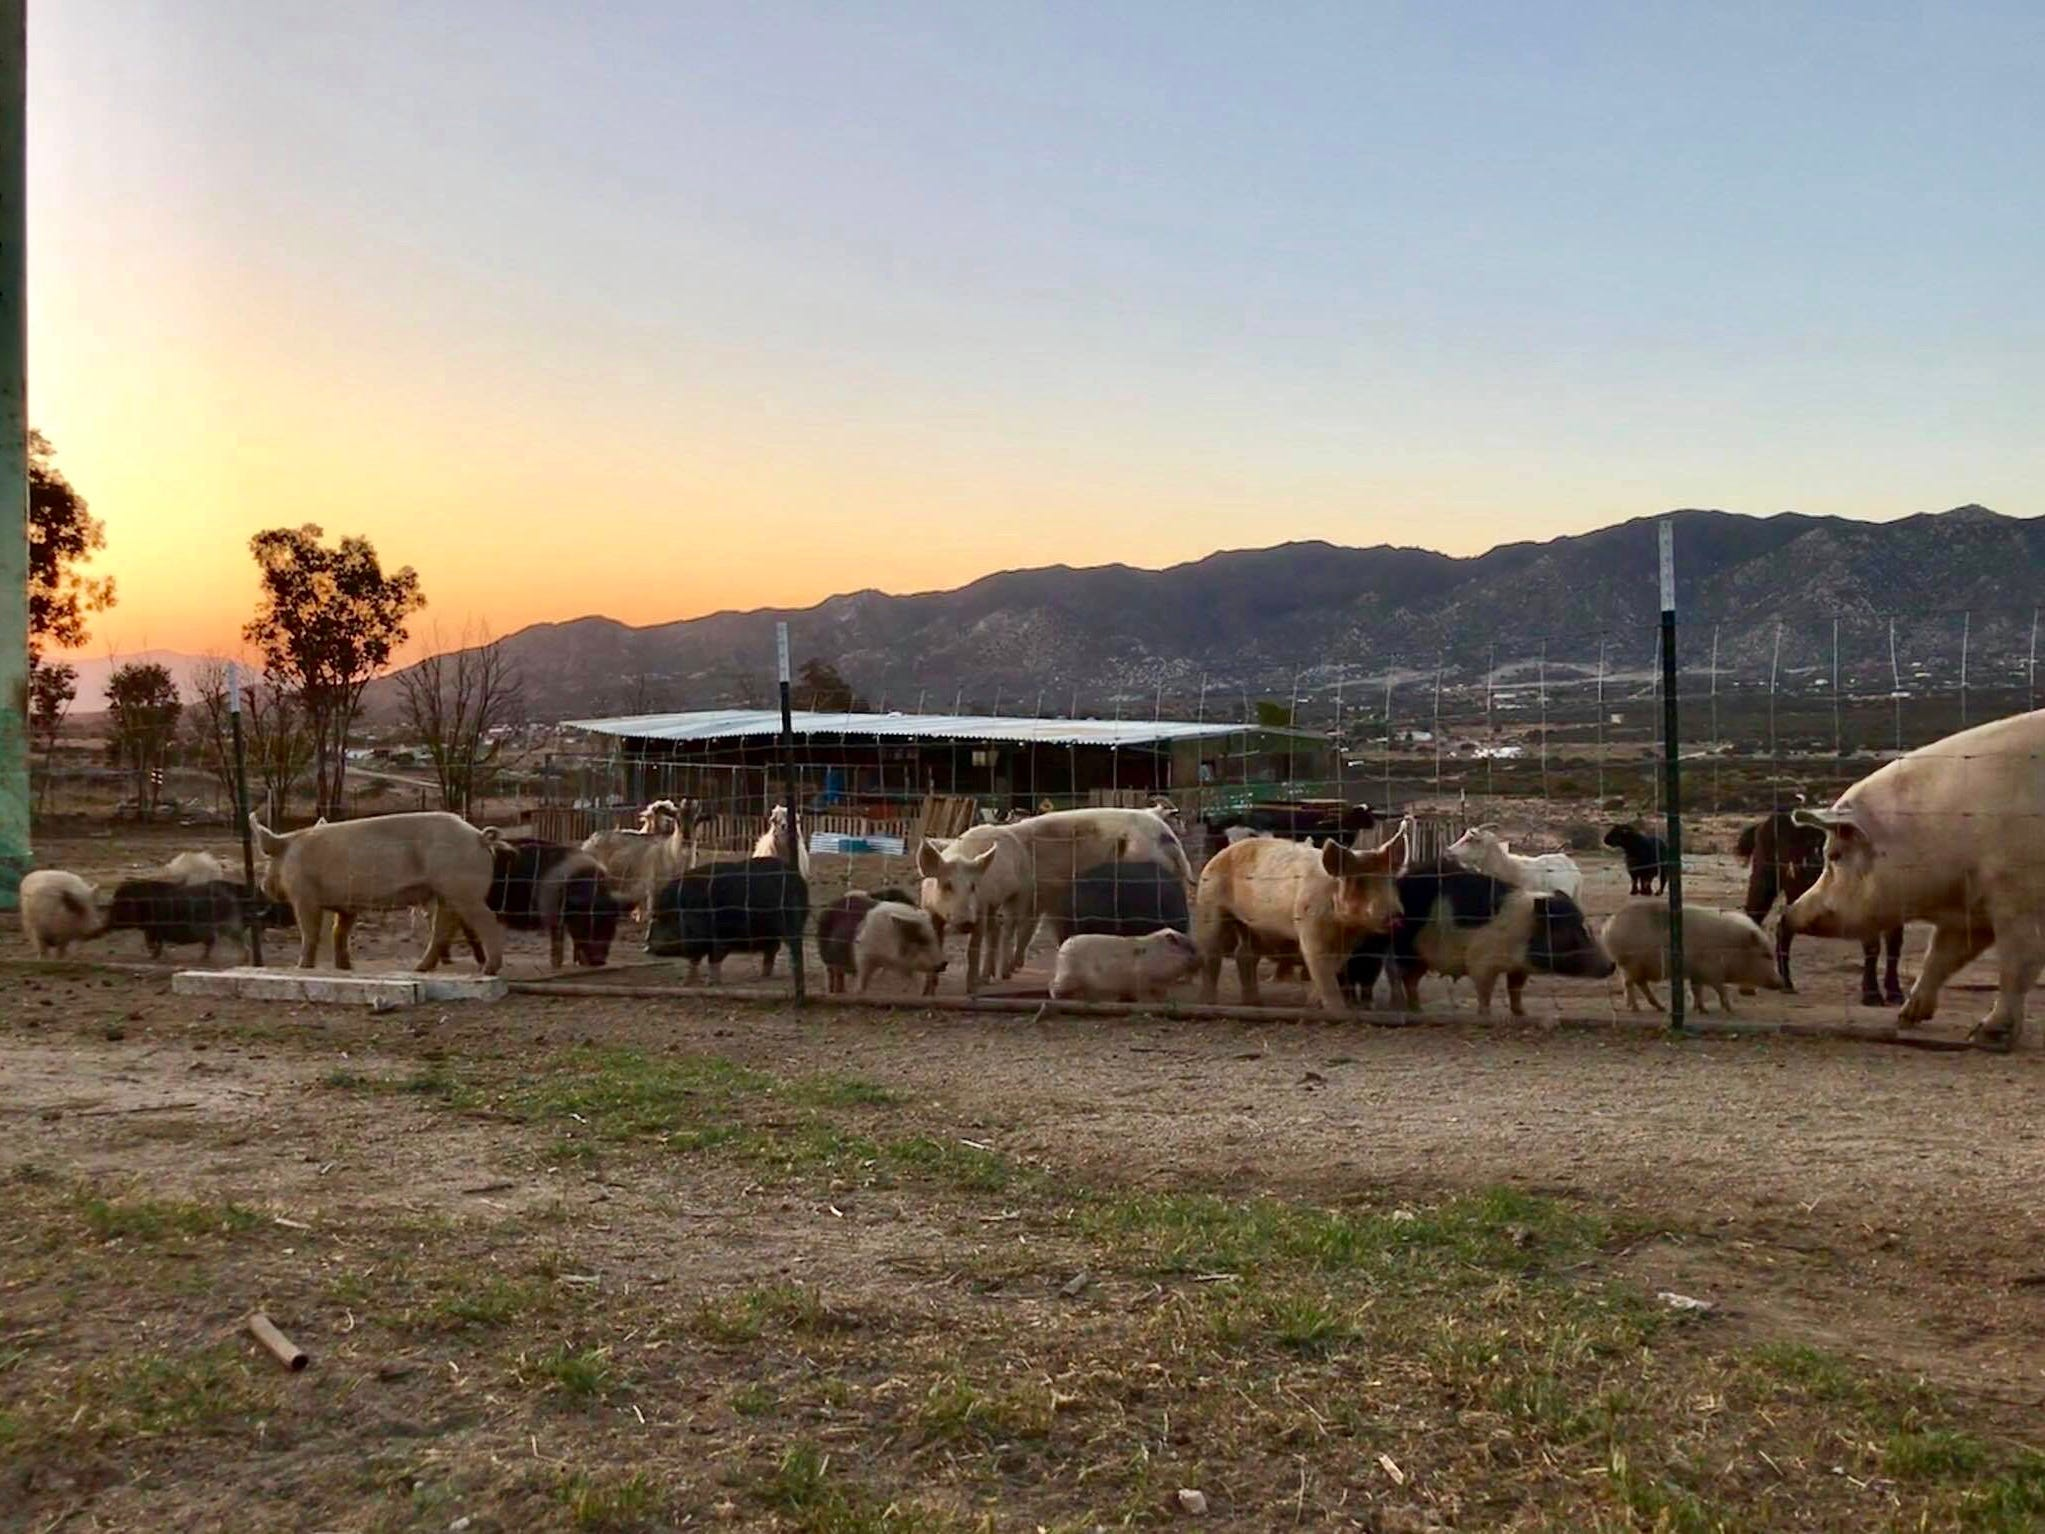 Halfton's future friends: a herd of rescued pigs in the high desert of San Diego County will welcome a giant newcomer captured on a Ventura County bike trail after he gets fixed.